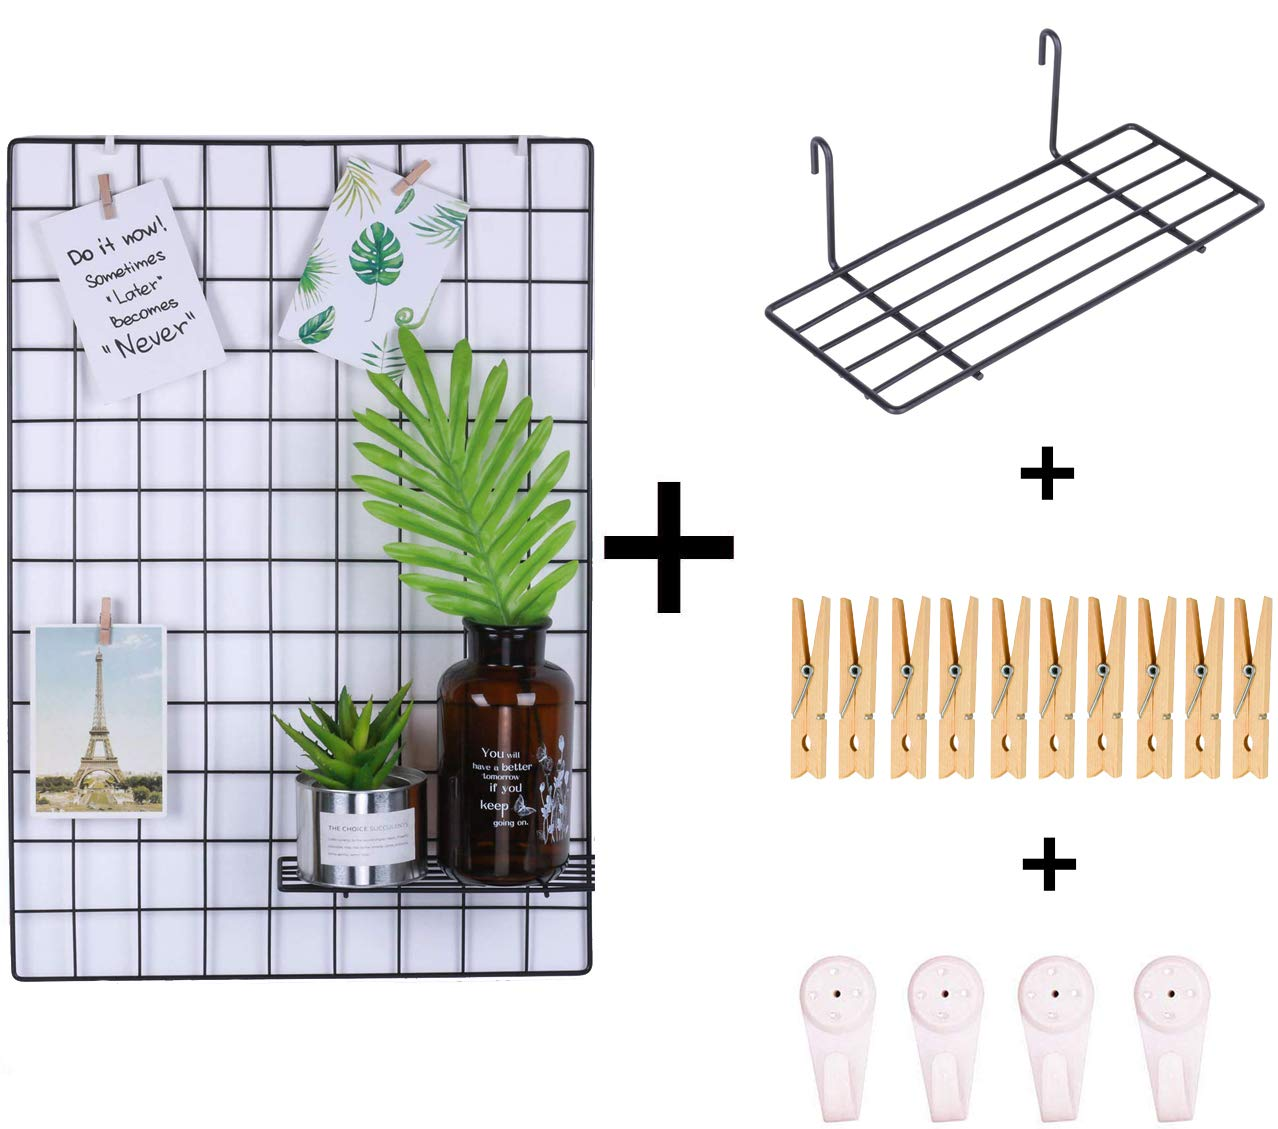 Tiny Smiles Black Wall Grid Panel | Bonus One Shelf, Clips and Nails | 17.7''x 25.6'' | Photo Hanging Display & Wall Decoration Organizer, Multi-Functional Wall Storage Display Grid